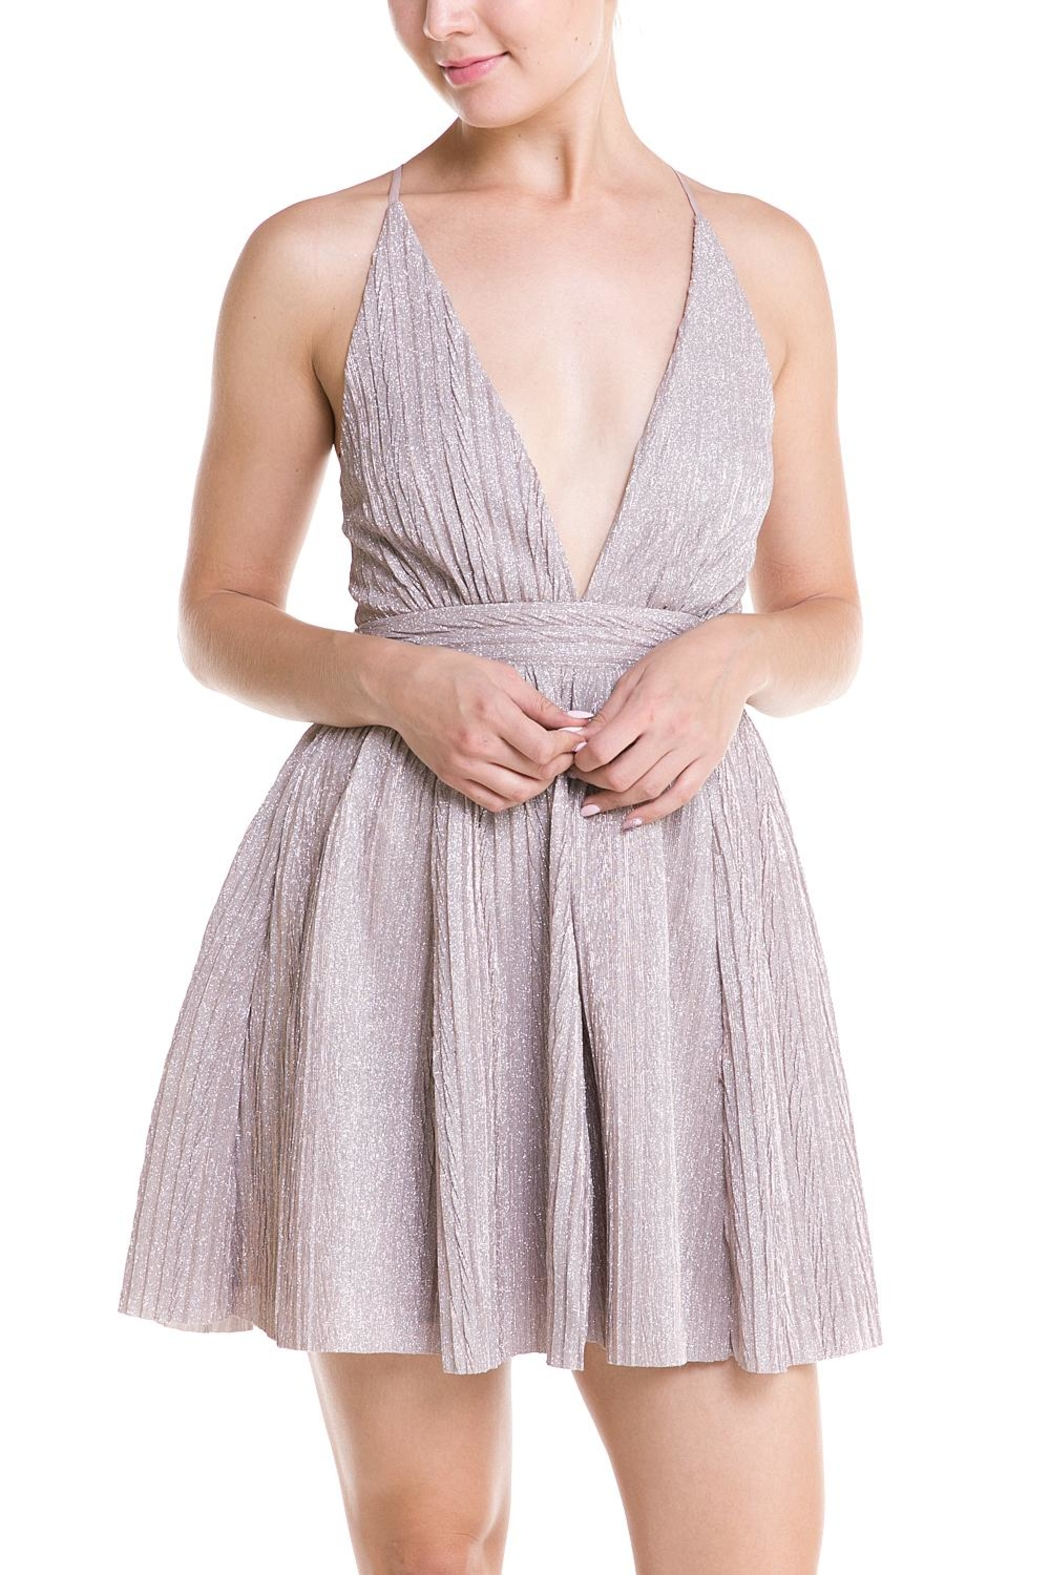 luxxel Plunging Neckline Dress - Front Full Image